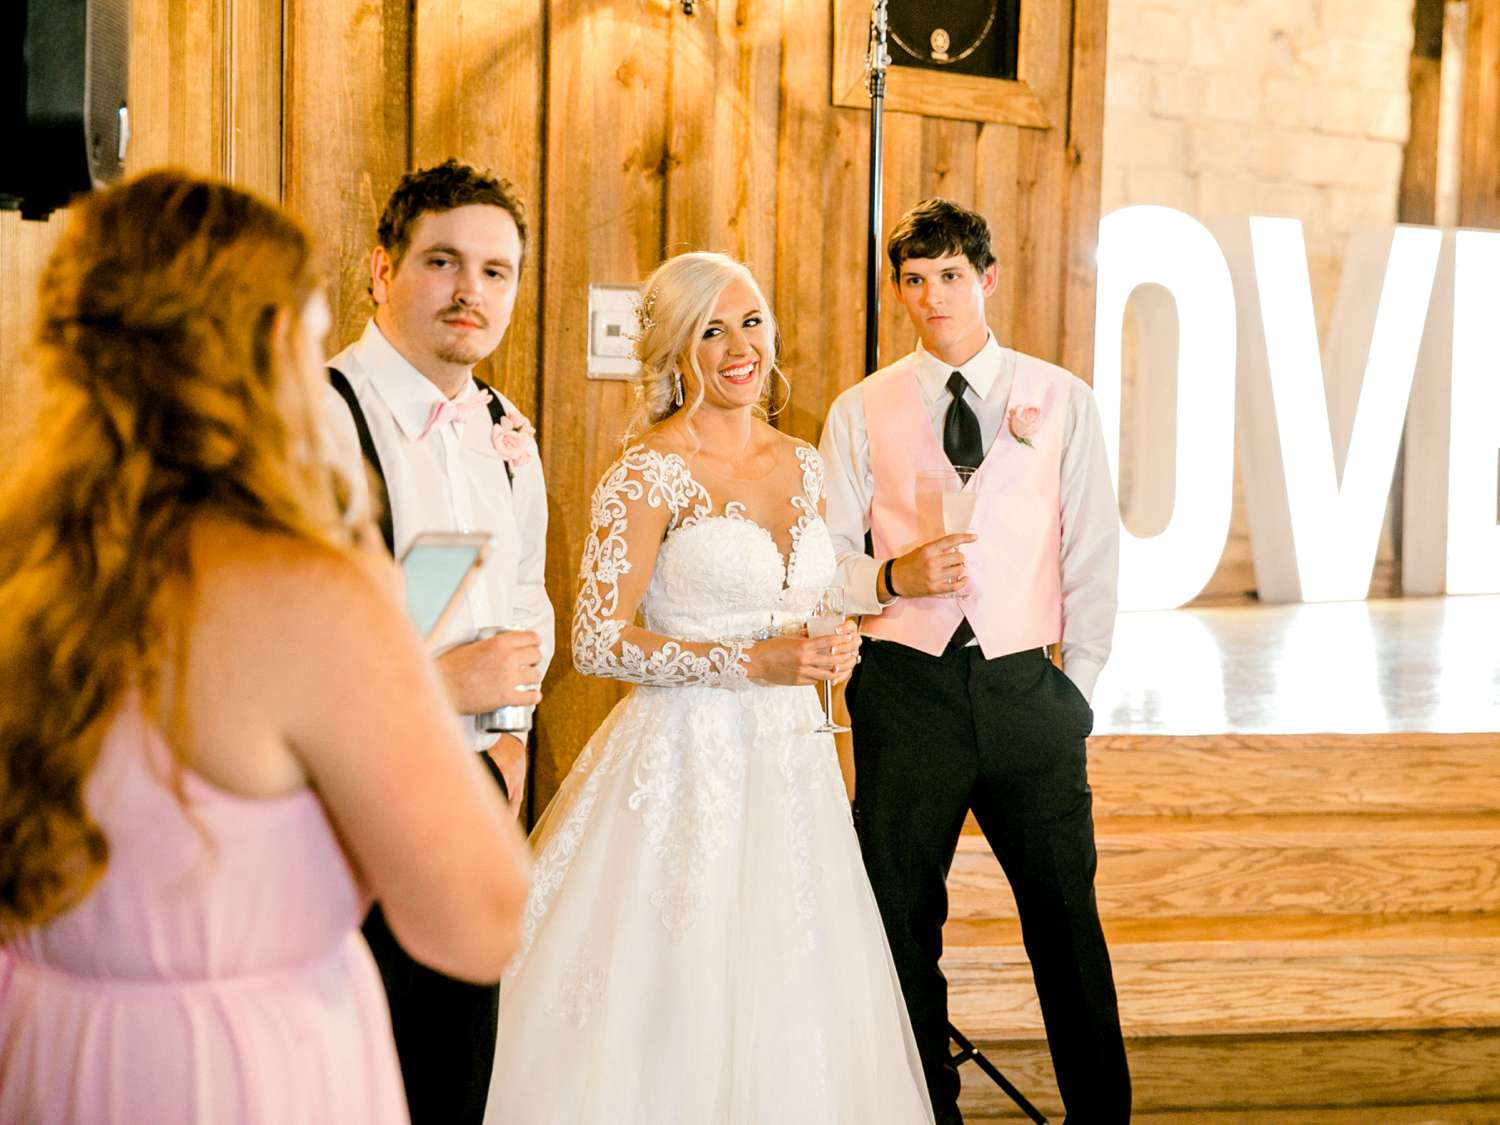 JESSICA+LYLE+NEEL+THE_SPRINGS_EVENTS_WEDDING_OKLAHOMA_ALLEEJ_PHOTOGRAPHER_0145.jpg